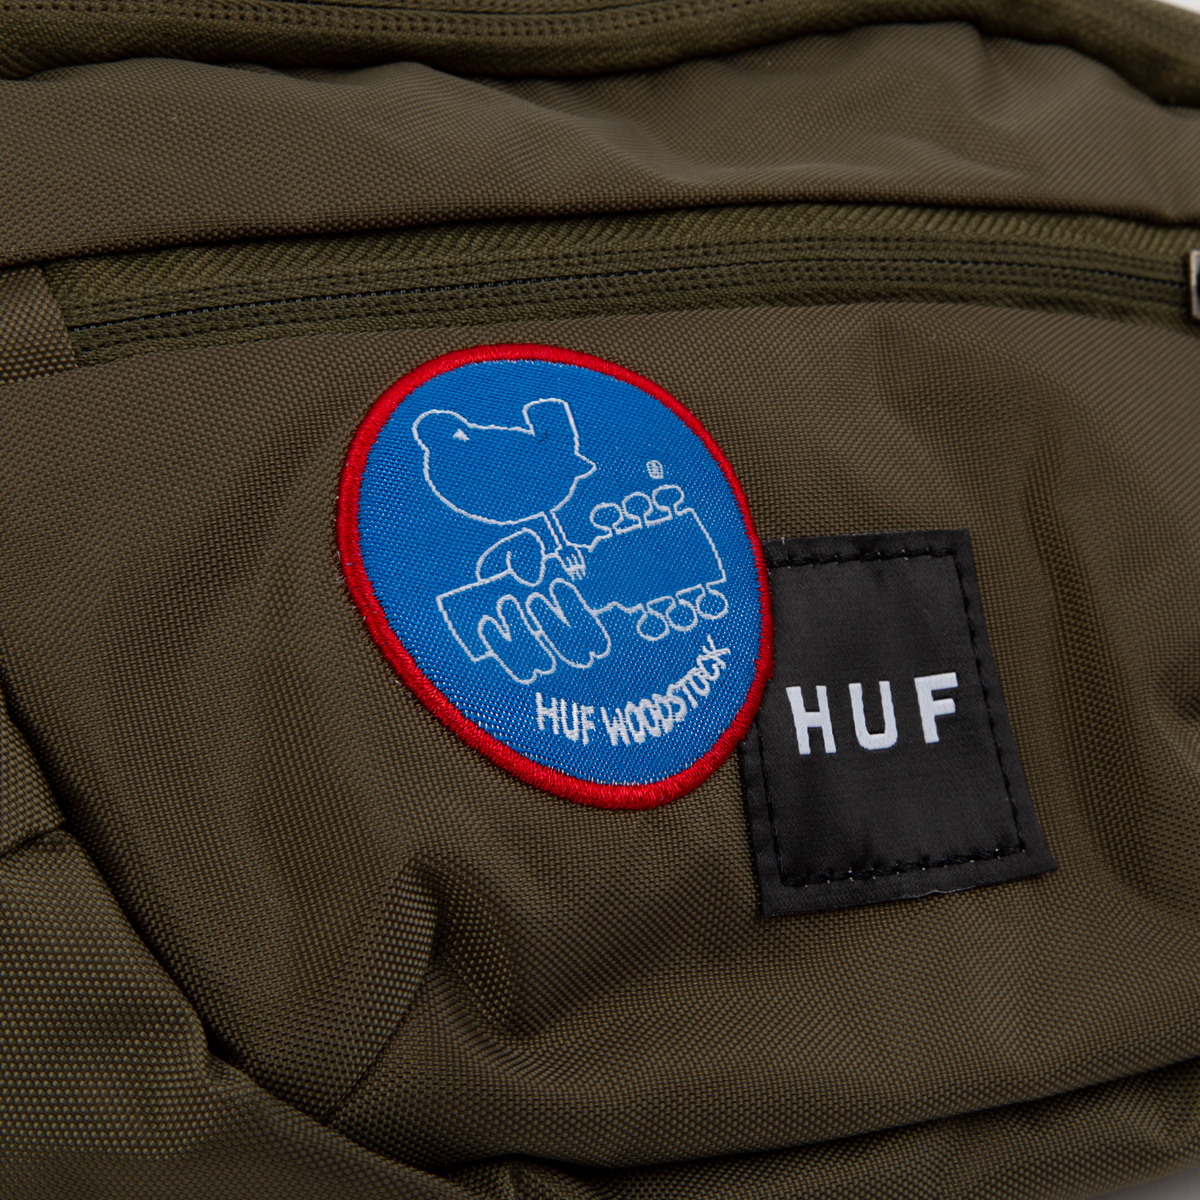 Woodstock x HUF Side Trip Bag